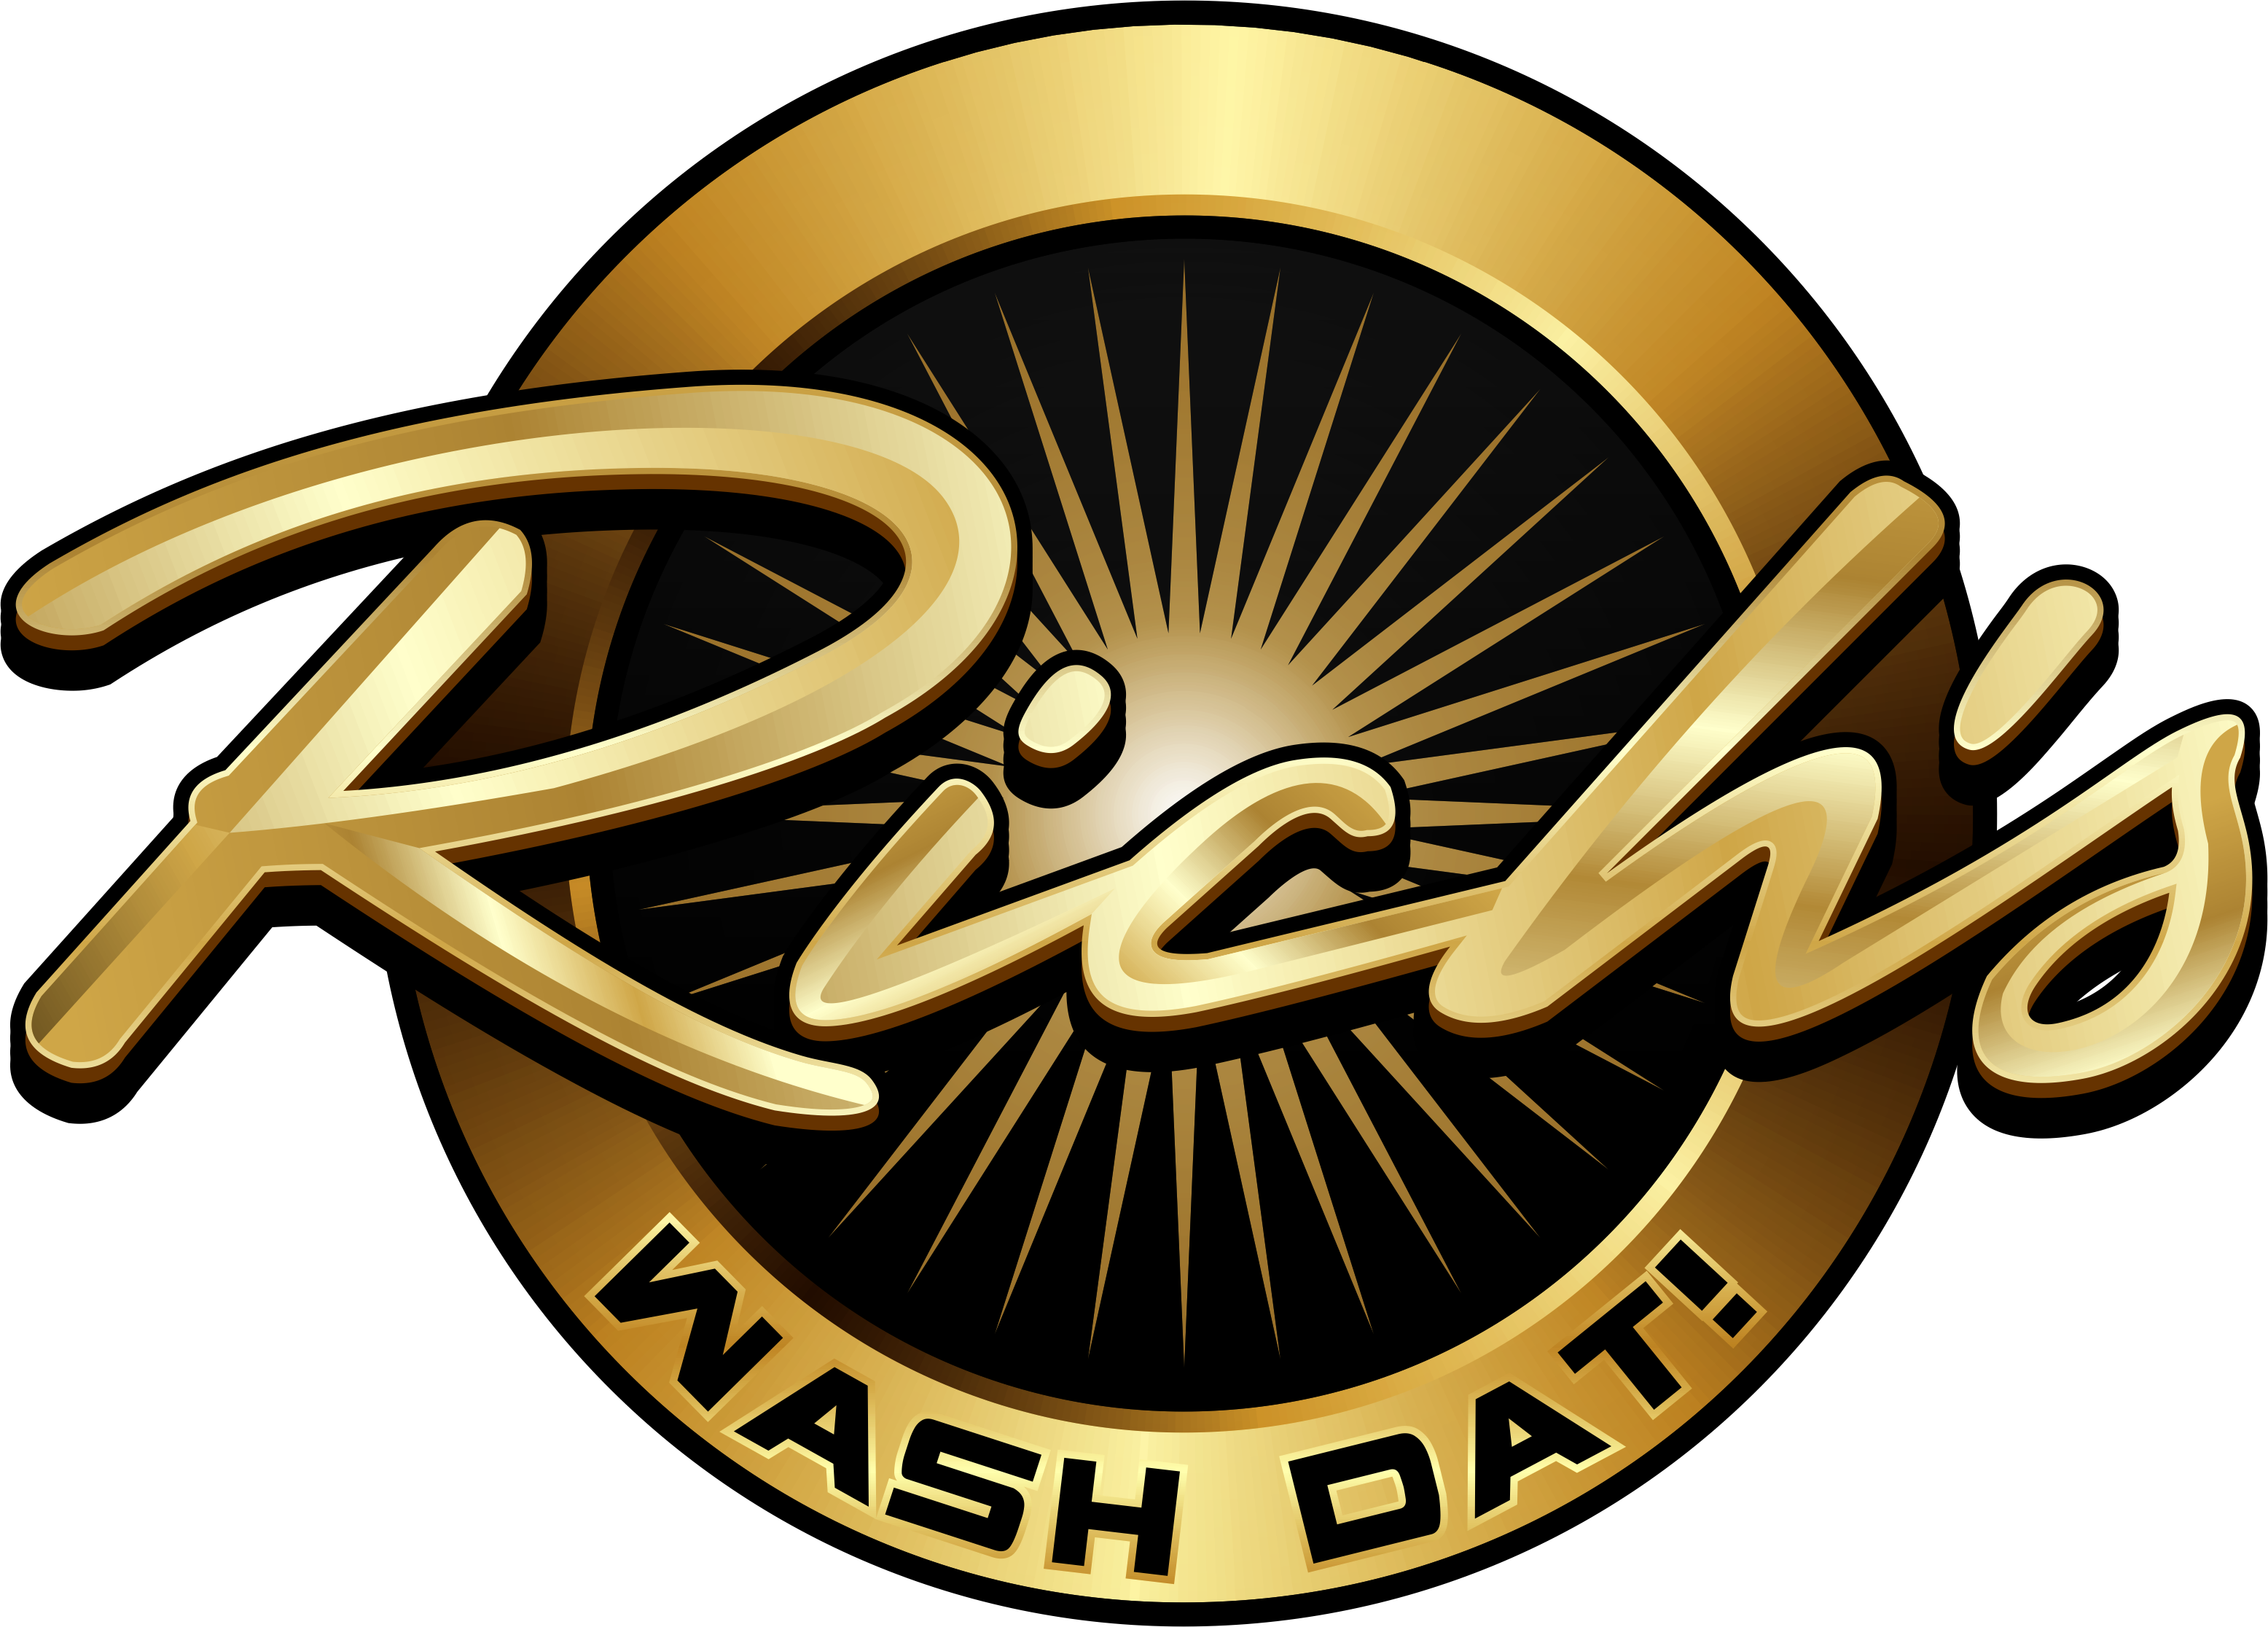 Rich's Wash Dat!